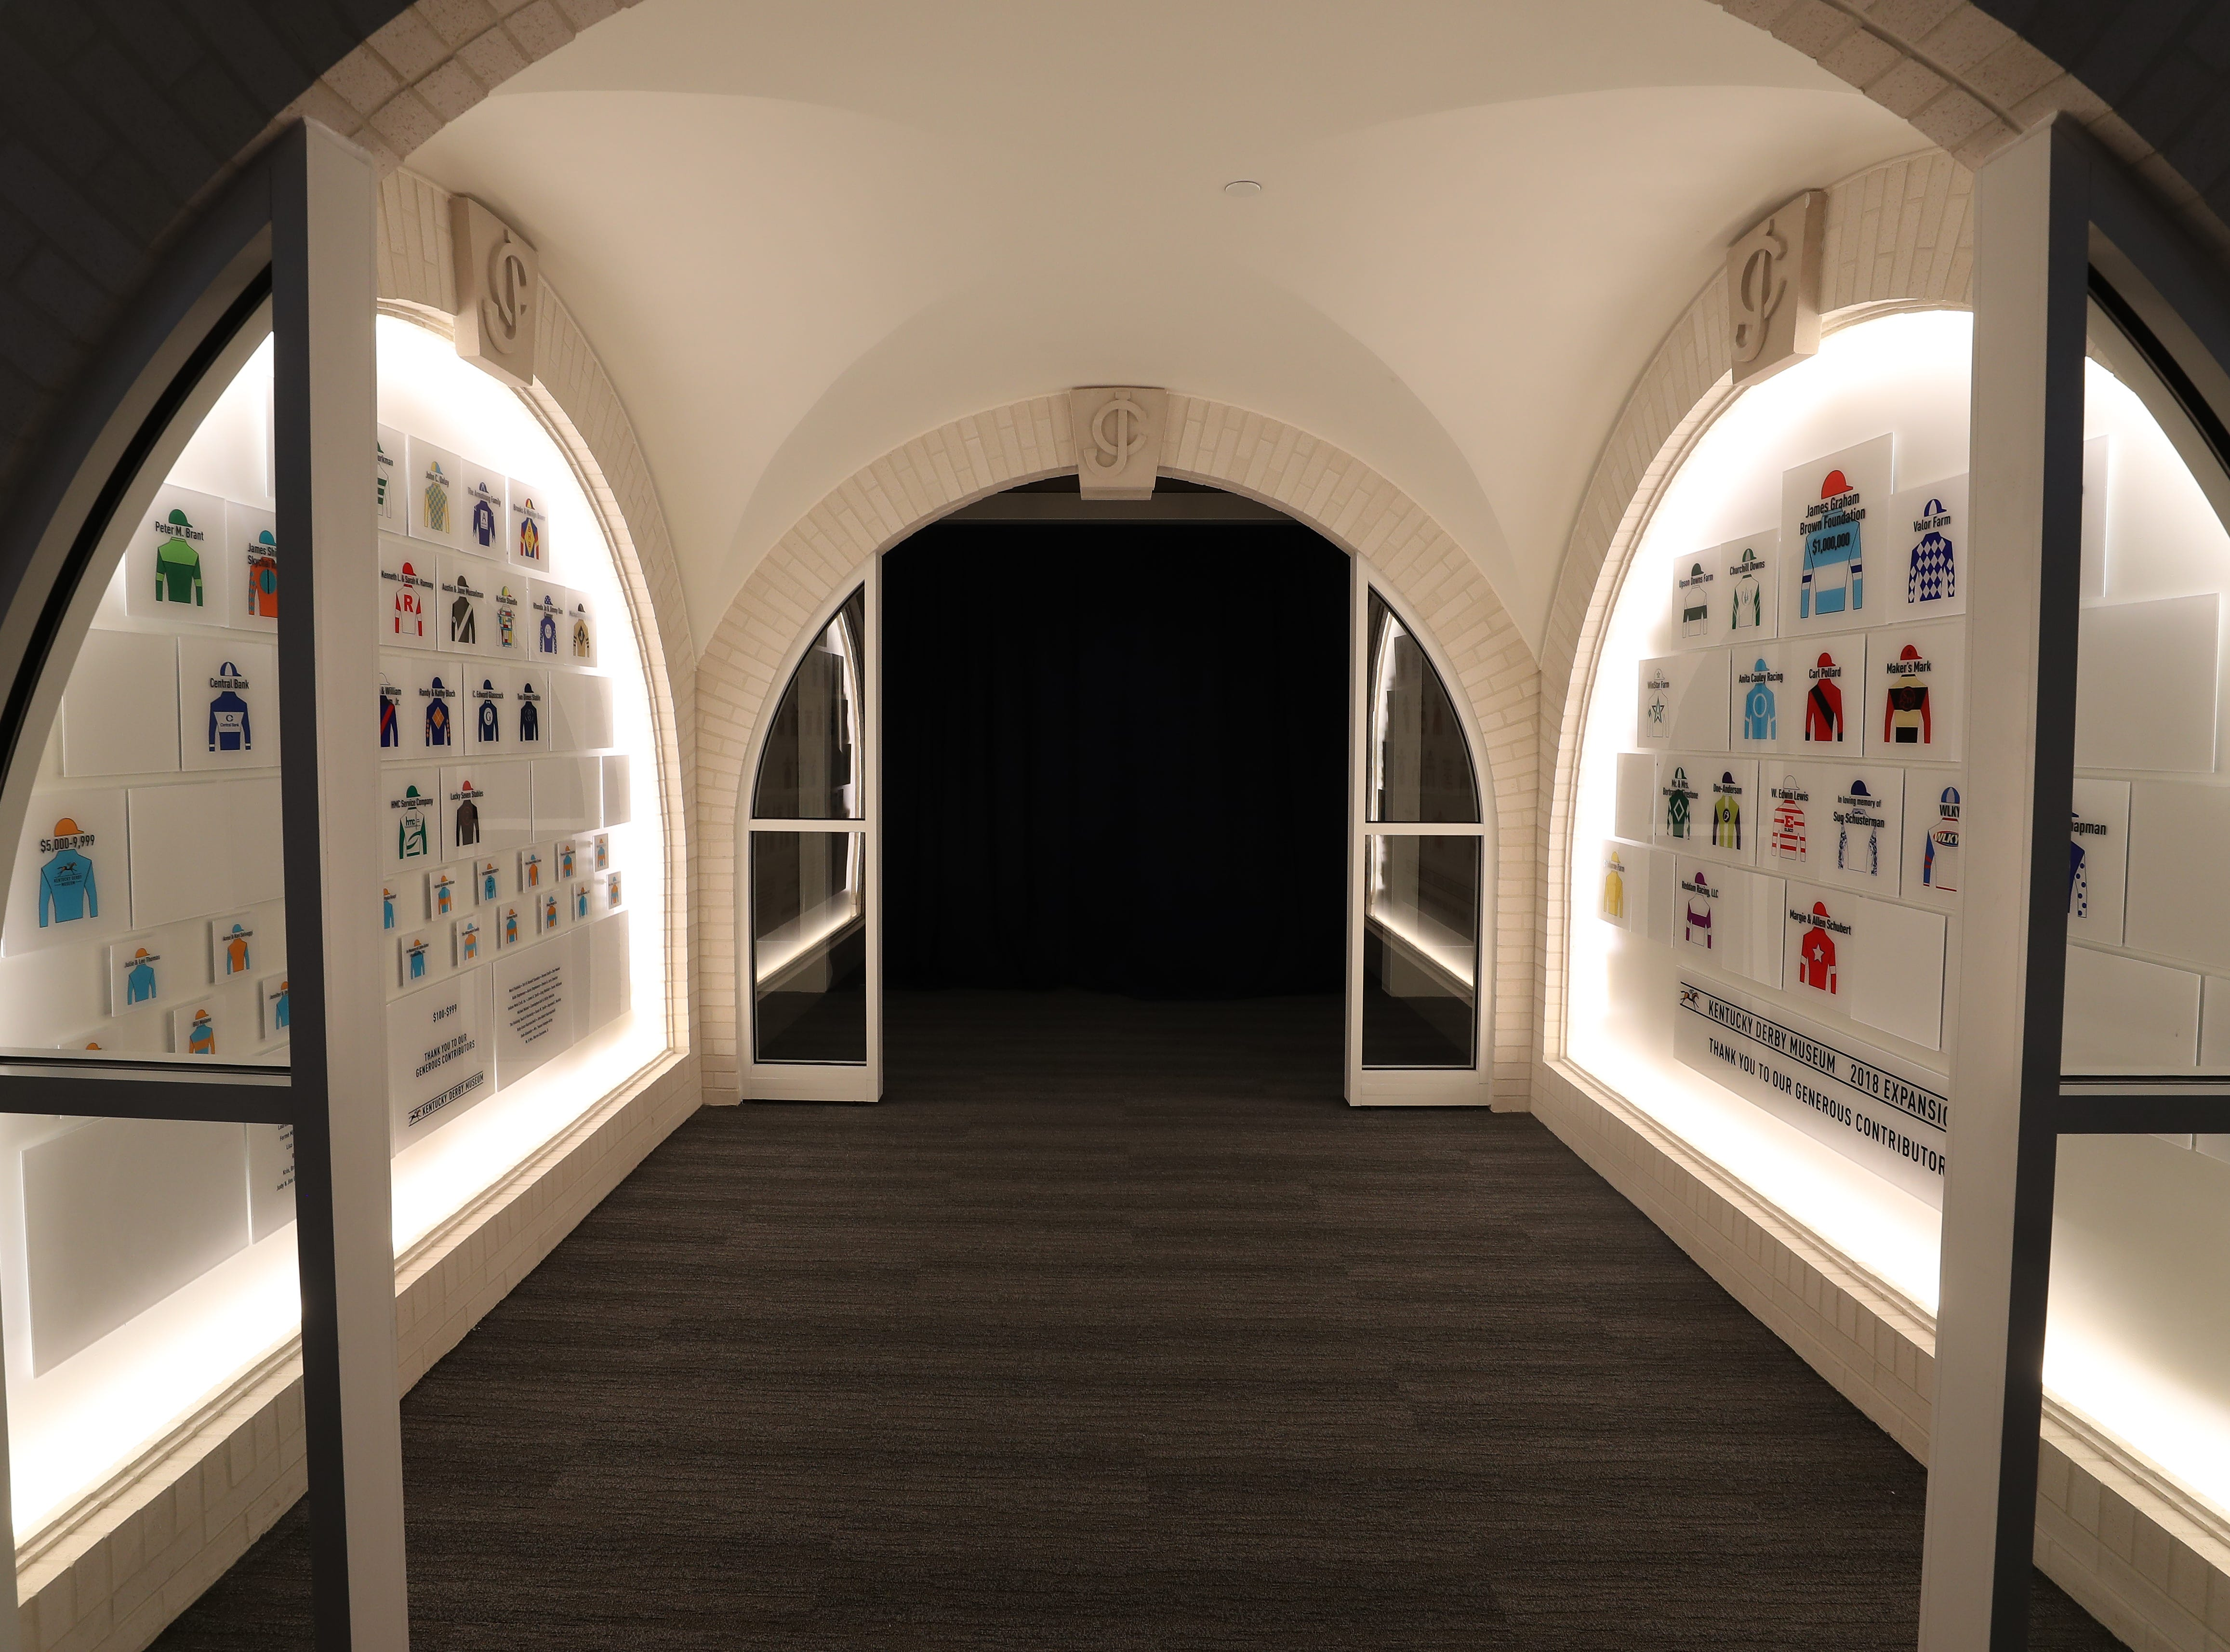 The entrance tunnel to the new Kentucky Derby Museum expansion highlights donors.  The museum has added two new galleries featuring D. Wayne Lukas and Bill Shoemaker.    Oct. 31, 2018